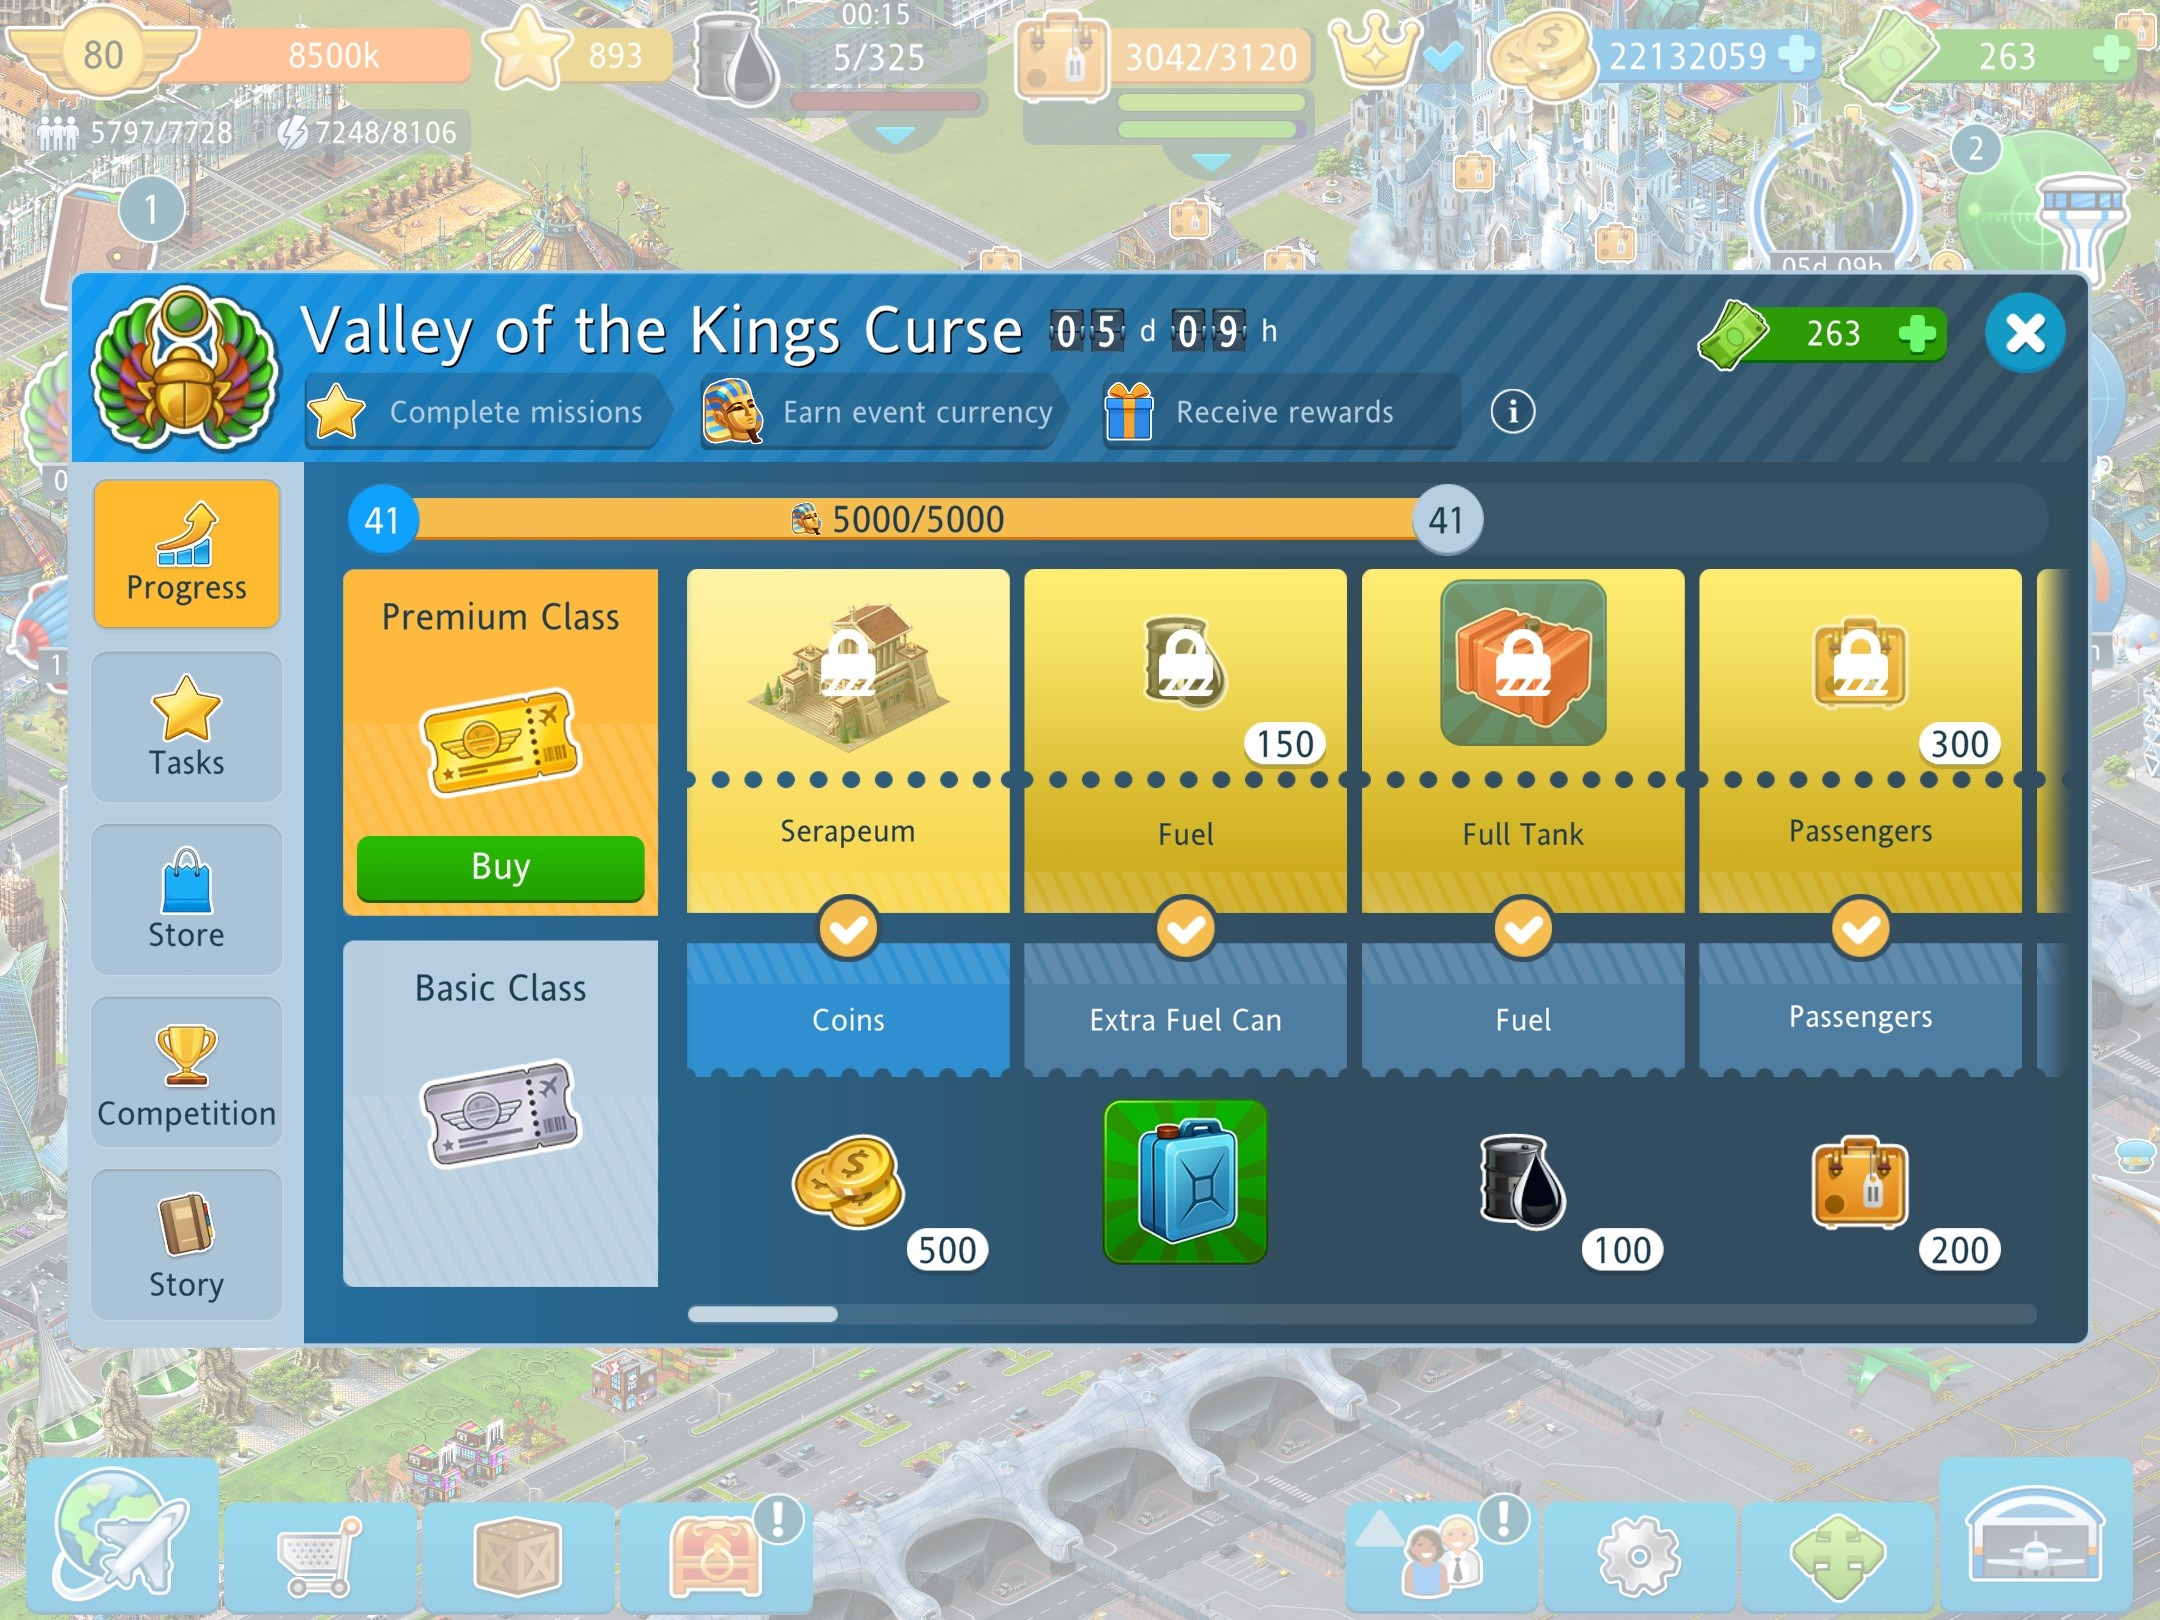 202110 valley of the kings curse.jpg